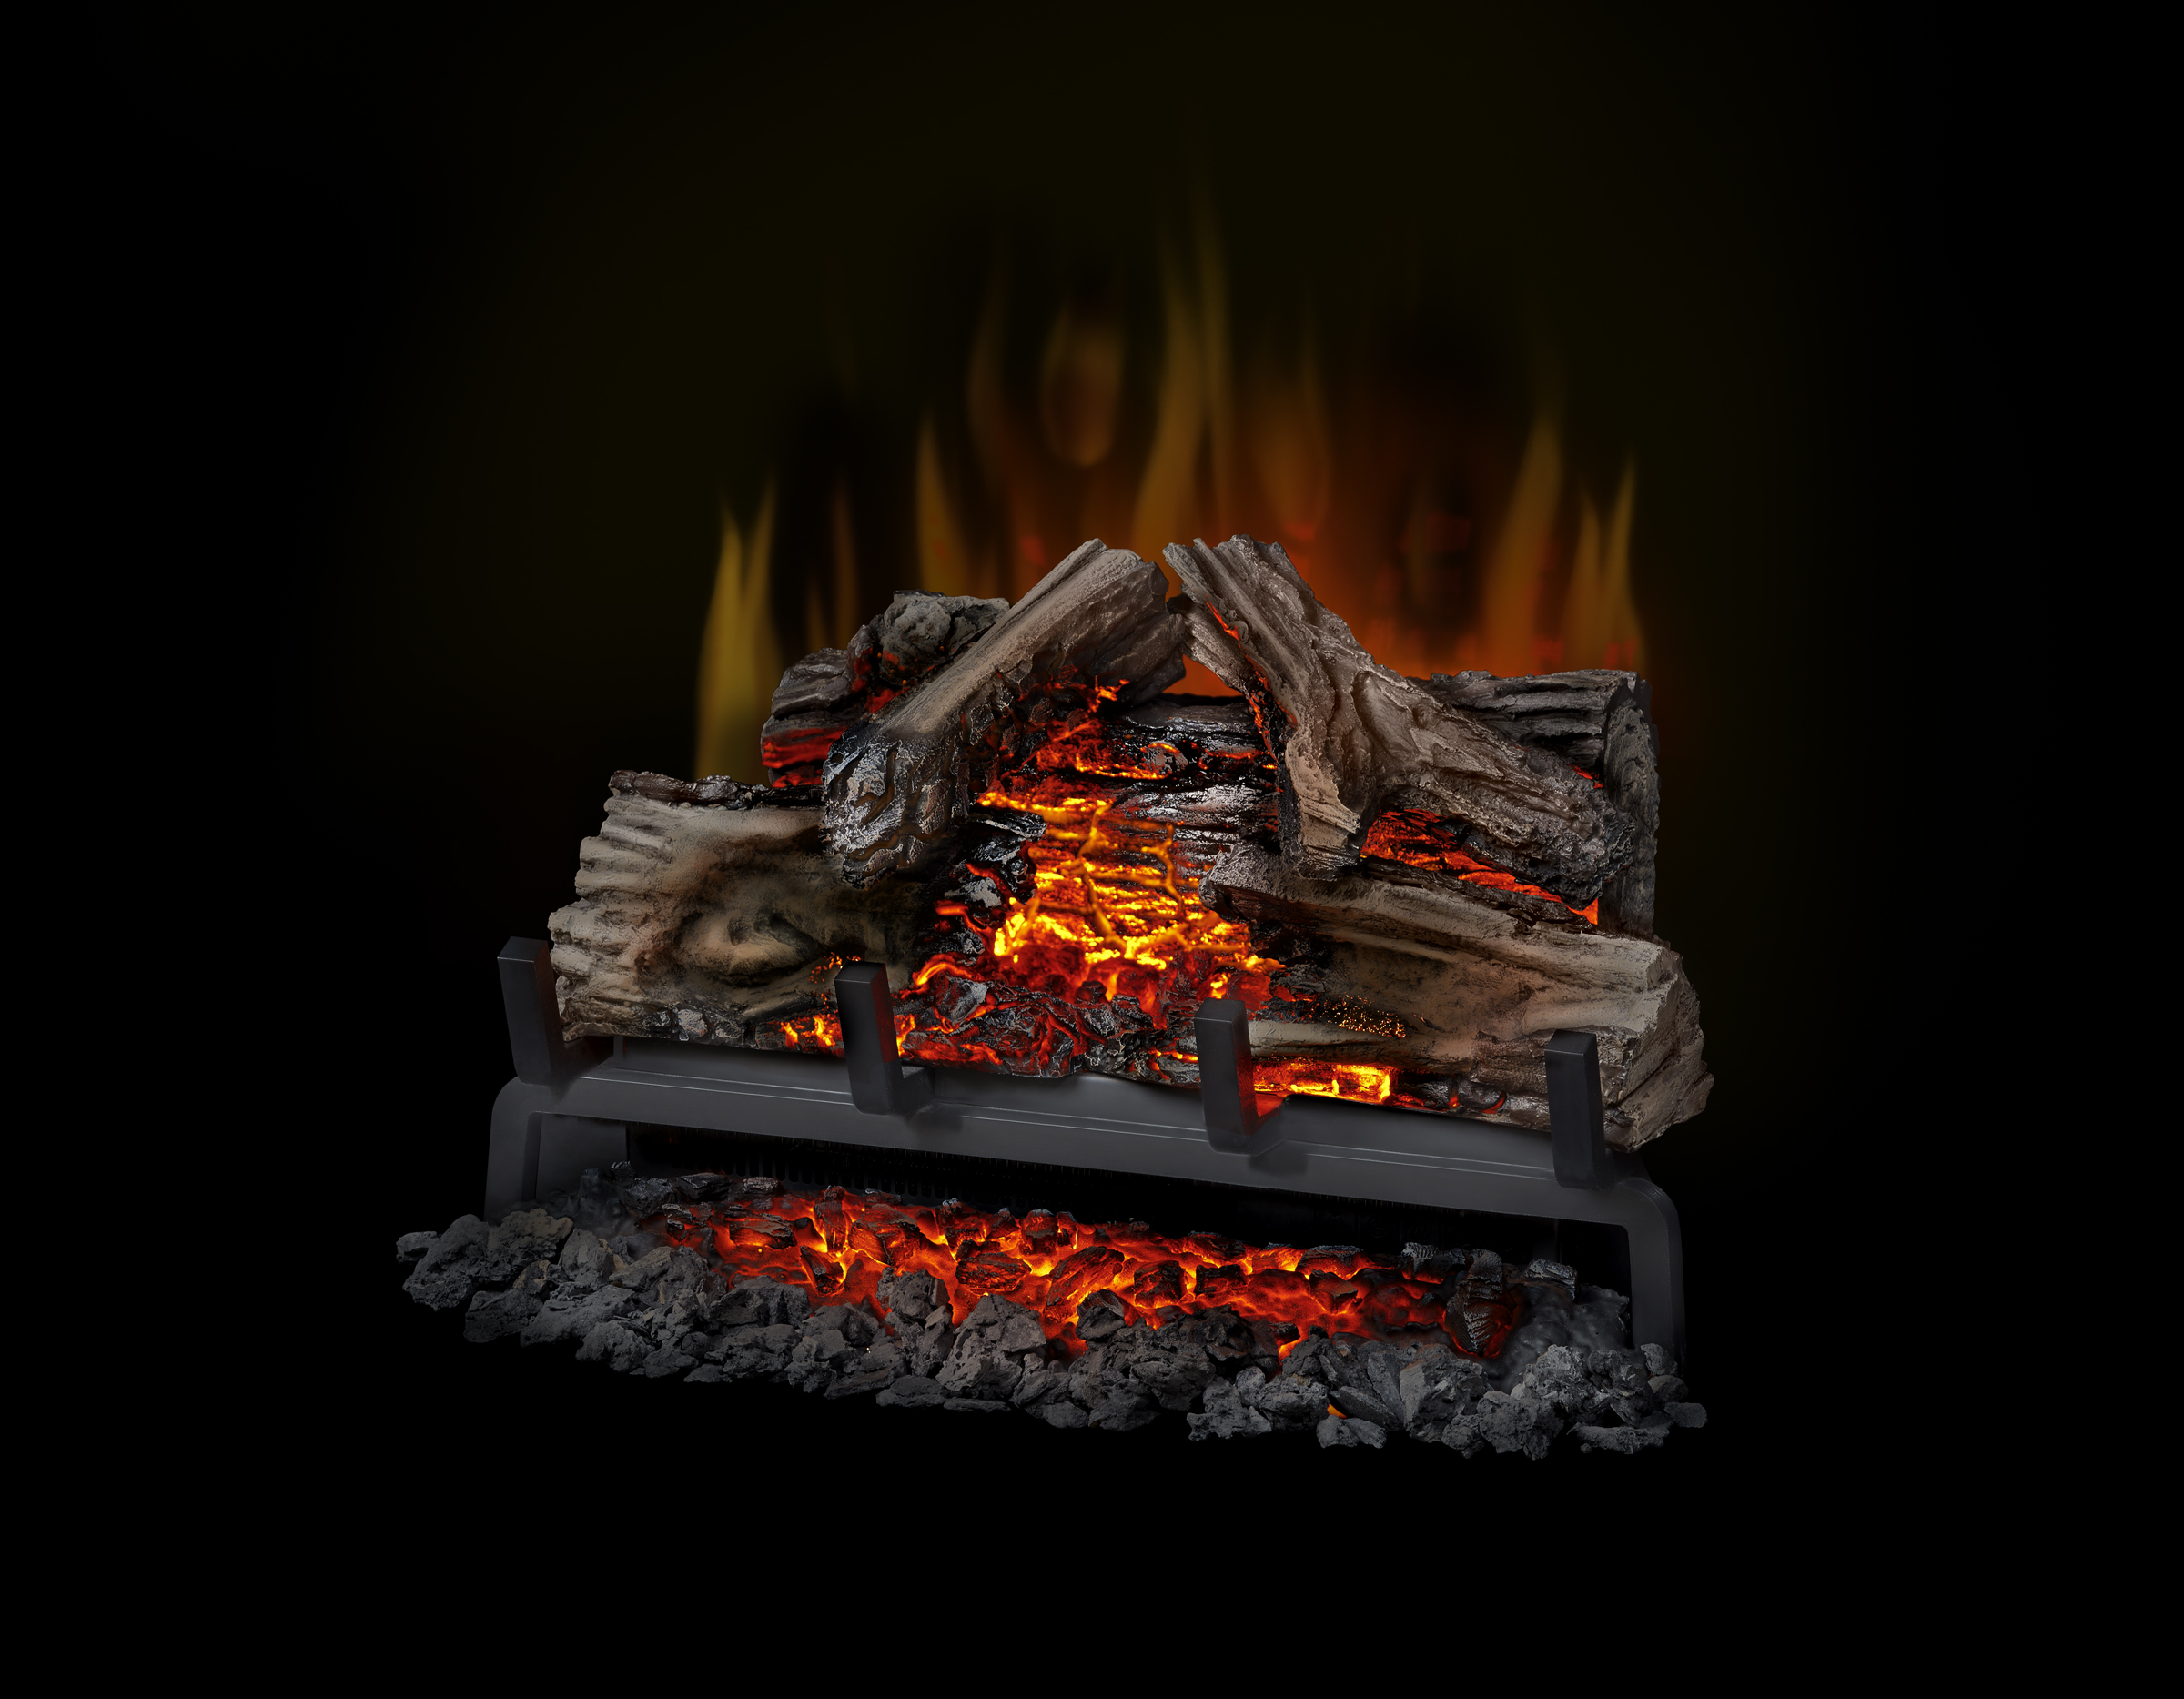 napoleon woodland electric log sets embers fireplaces u0026 outdoor